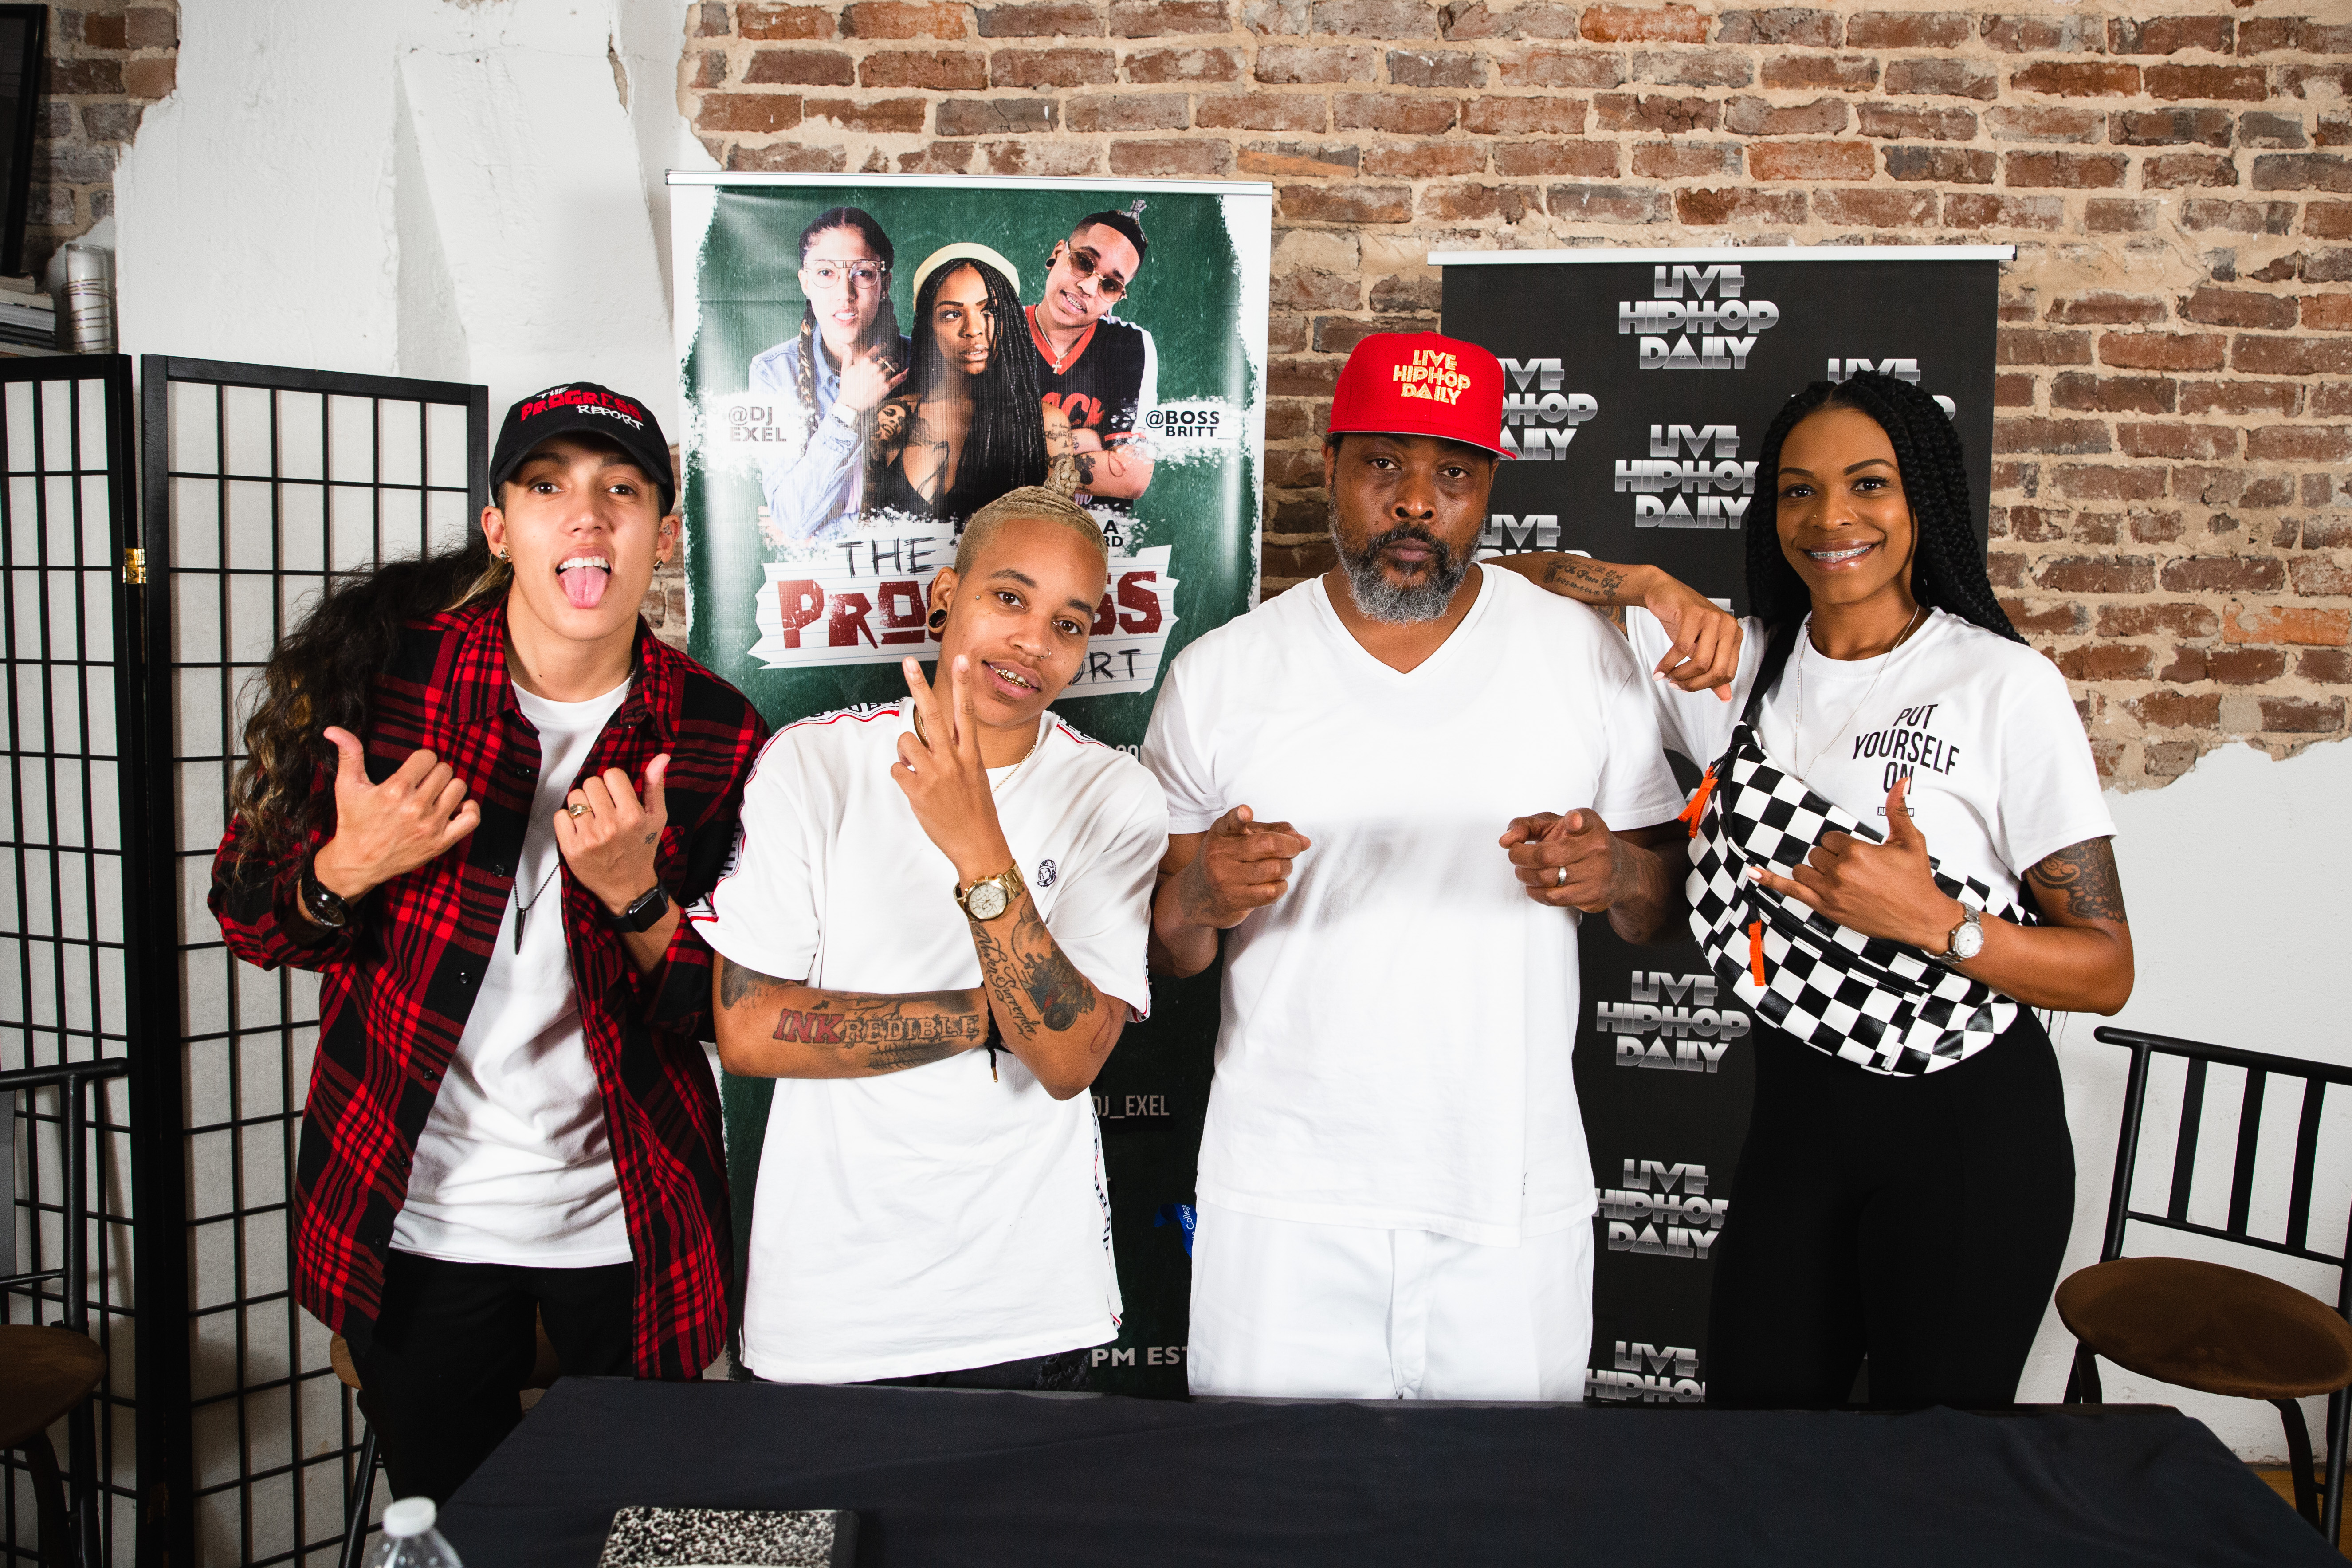 Khujo (Goodie Mob) Speaks On Atlanta's Impact On Hip Hop, Relationship With Outkast & Upcoming Tour With Erykah Badu [The Progress Report]